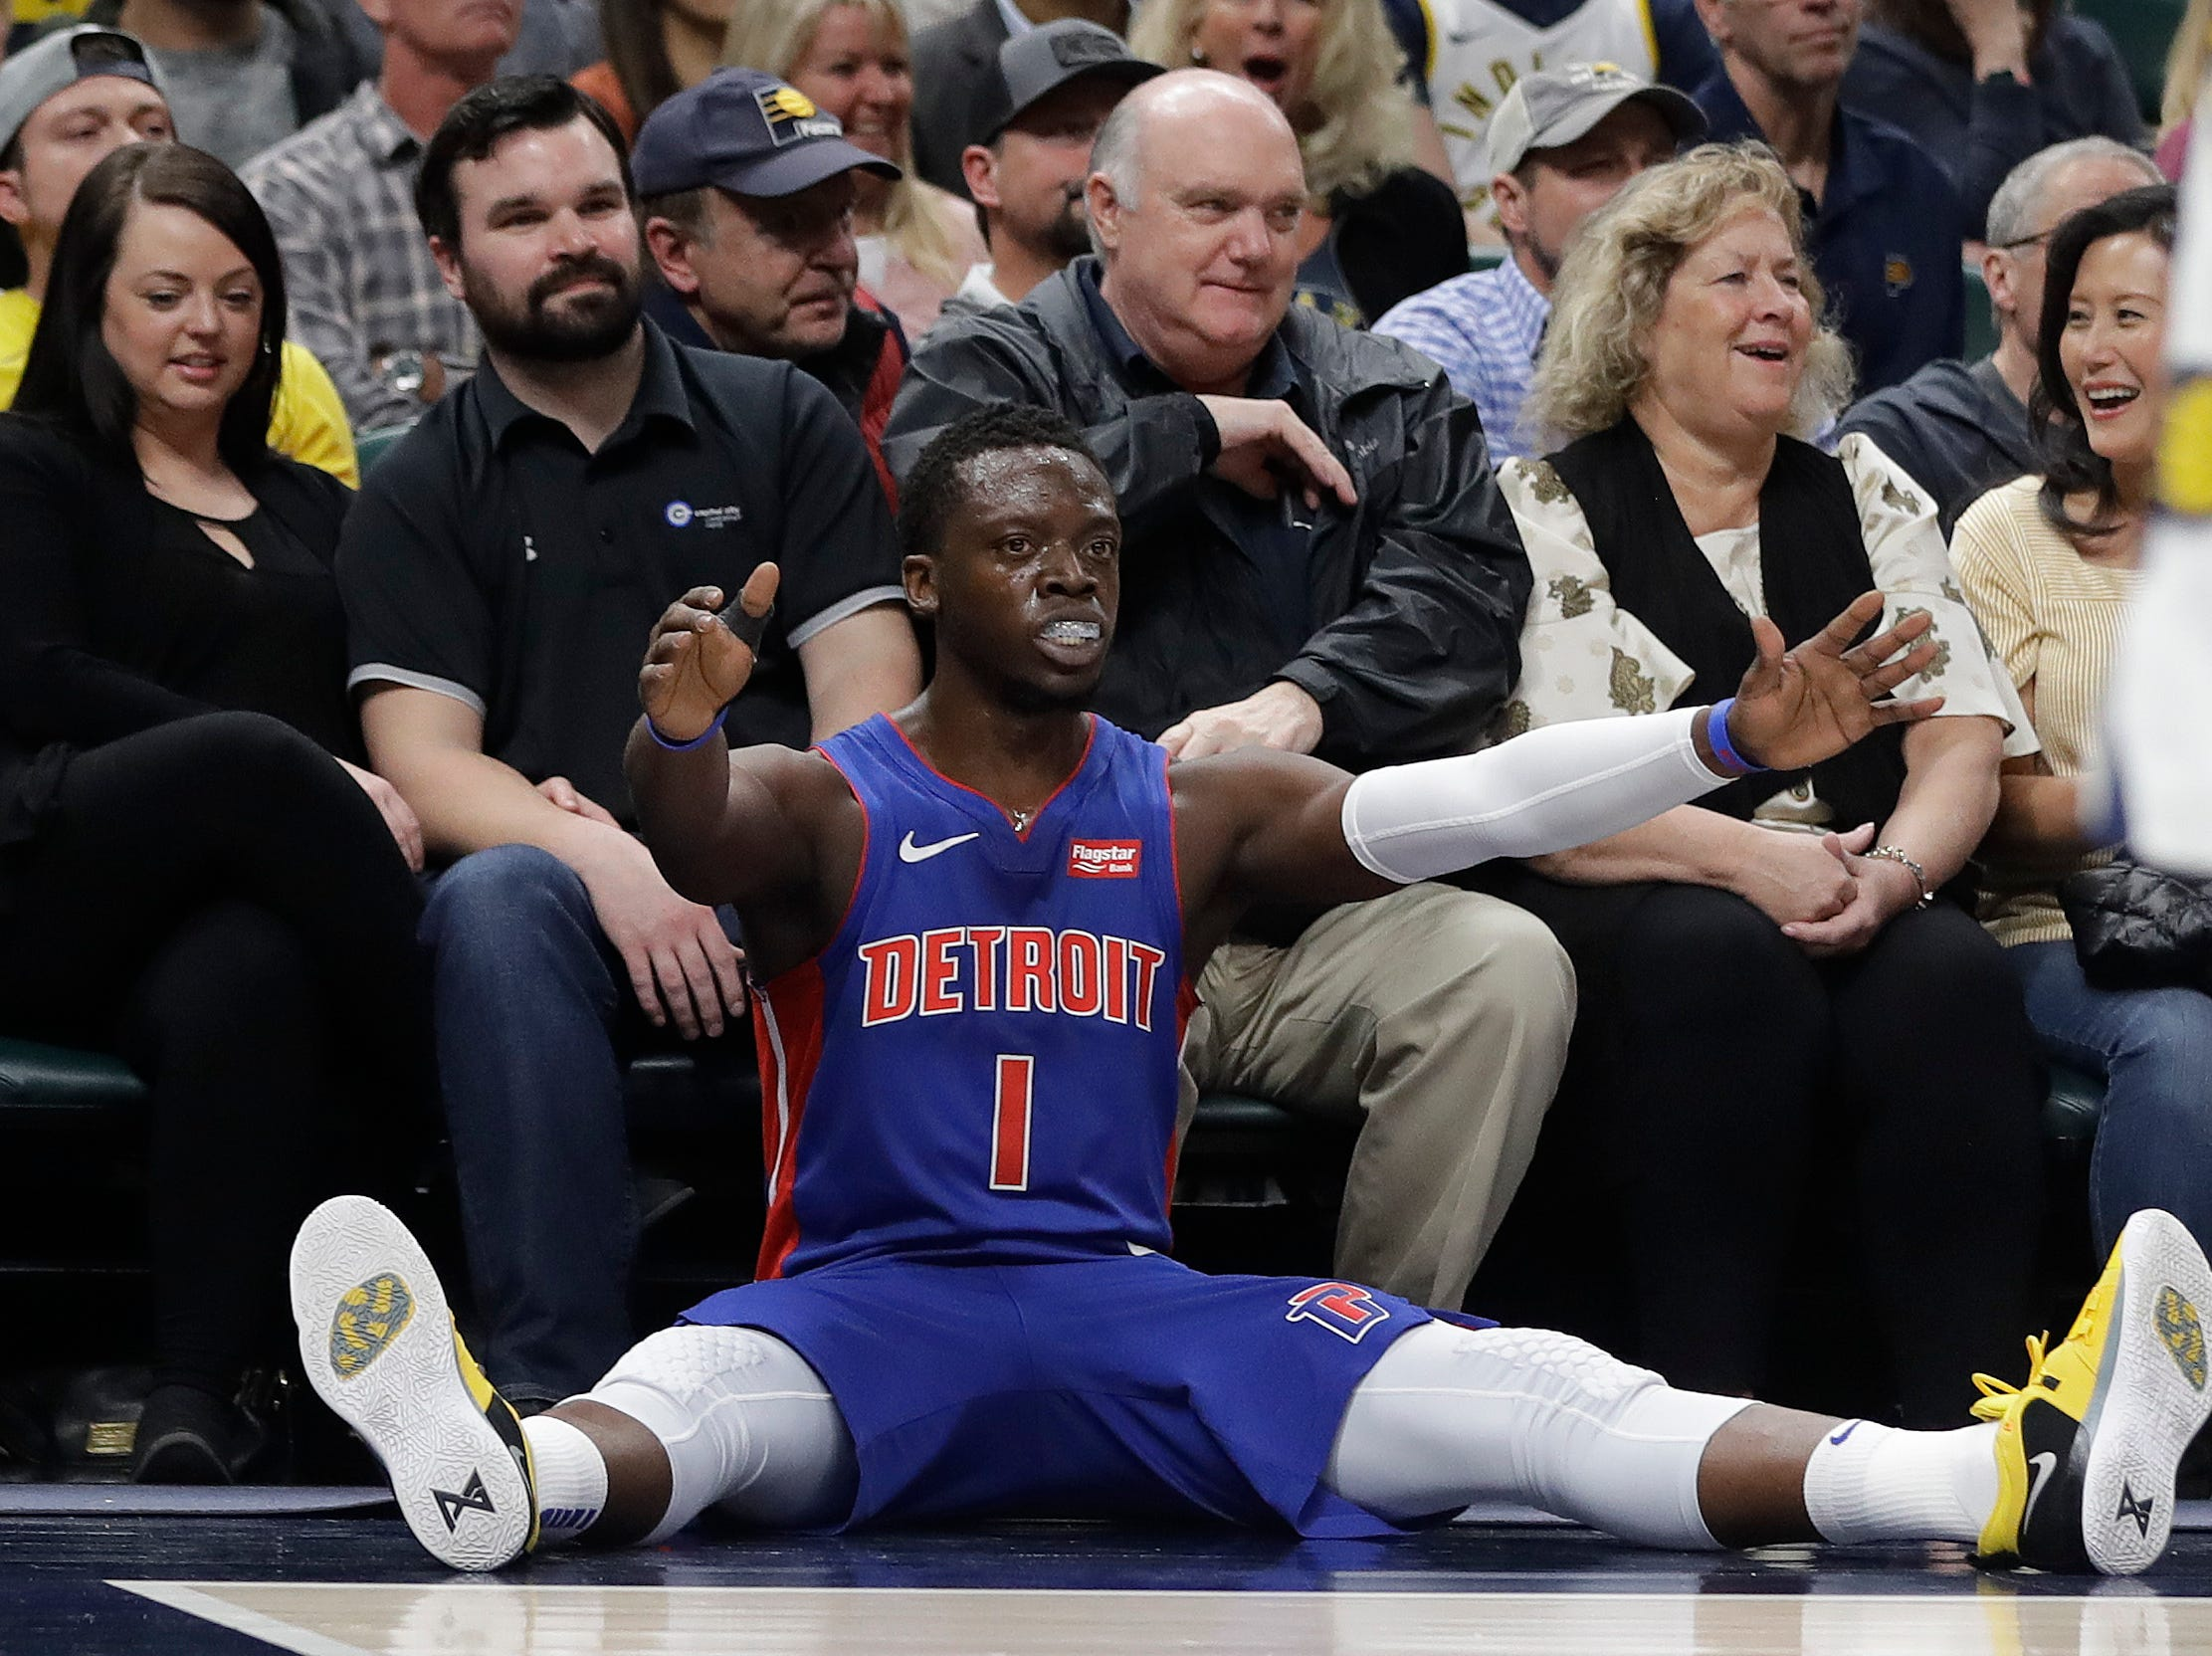 Detroit Pistons' Reggie Jackson (1) reacts after making a shot and getting fouled during the first half of an NBA basketball game against the Indiana Pacers, Monday, April 1, 2019, in Indianapolis.